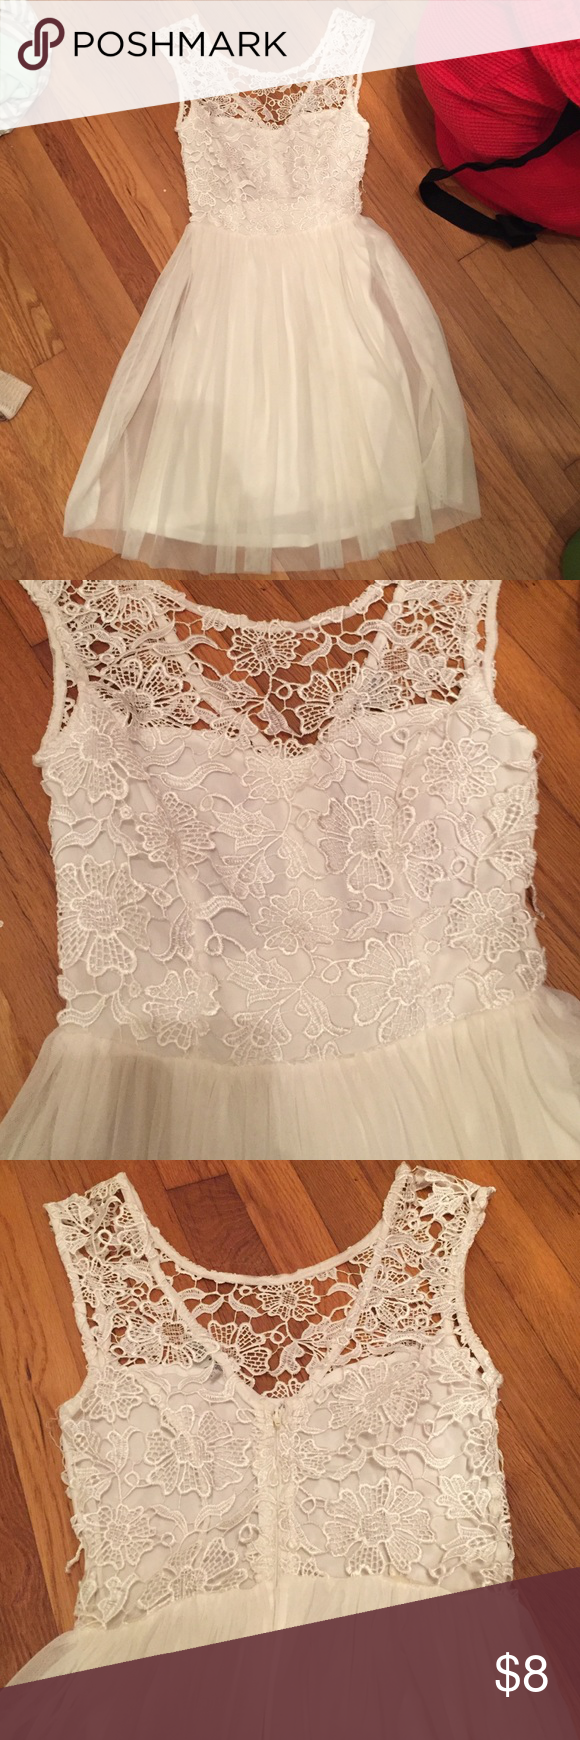 Charolette Russe Lace backless dress Lace dress with a sweet heart neckline and lace that comes up more high neckline. Back is open, covered only by lace. One small snag/tear in the lace on the side, but otherwise in great shape. Worn only once. Charlotte Russe Dresses Mini